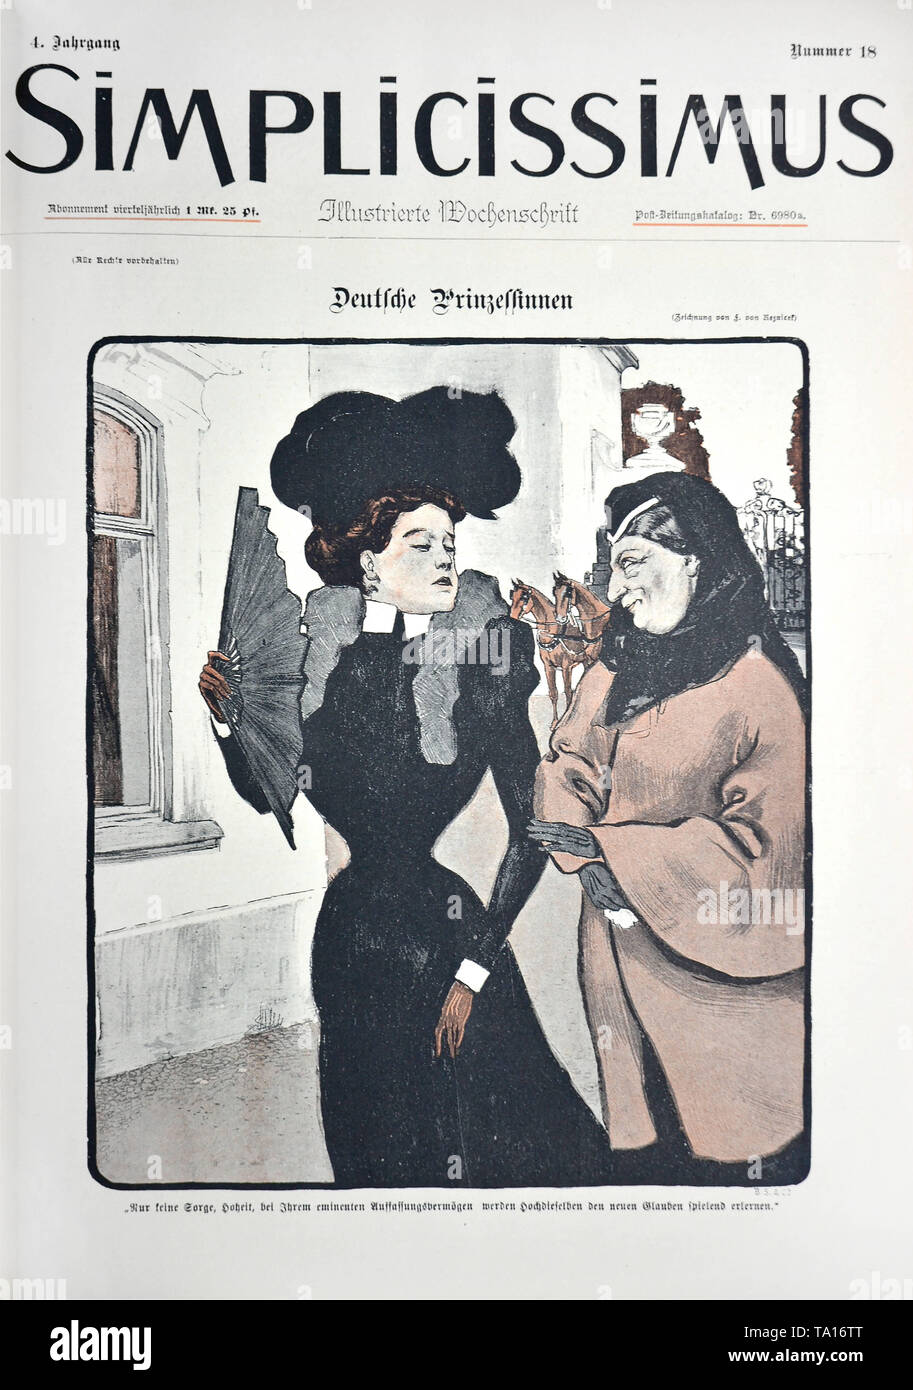 The drawing 'Deutsche Prinzessinnen' ('German Princesses') by Ferdinand von Reznicek. Cartoon from the satirical magazine 'Simplicissimus', Volume 4, Issue Number 18 (1898). Under the picture: 'Do not worry, Highness, with their eminent intelligence, they will learn the new faith playfully.' - Stock Image